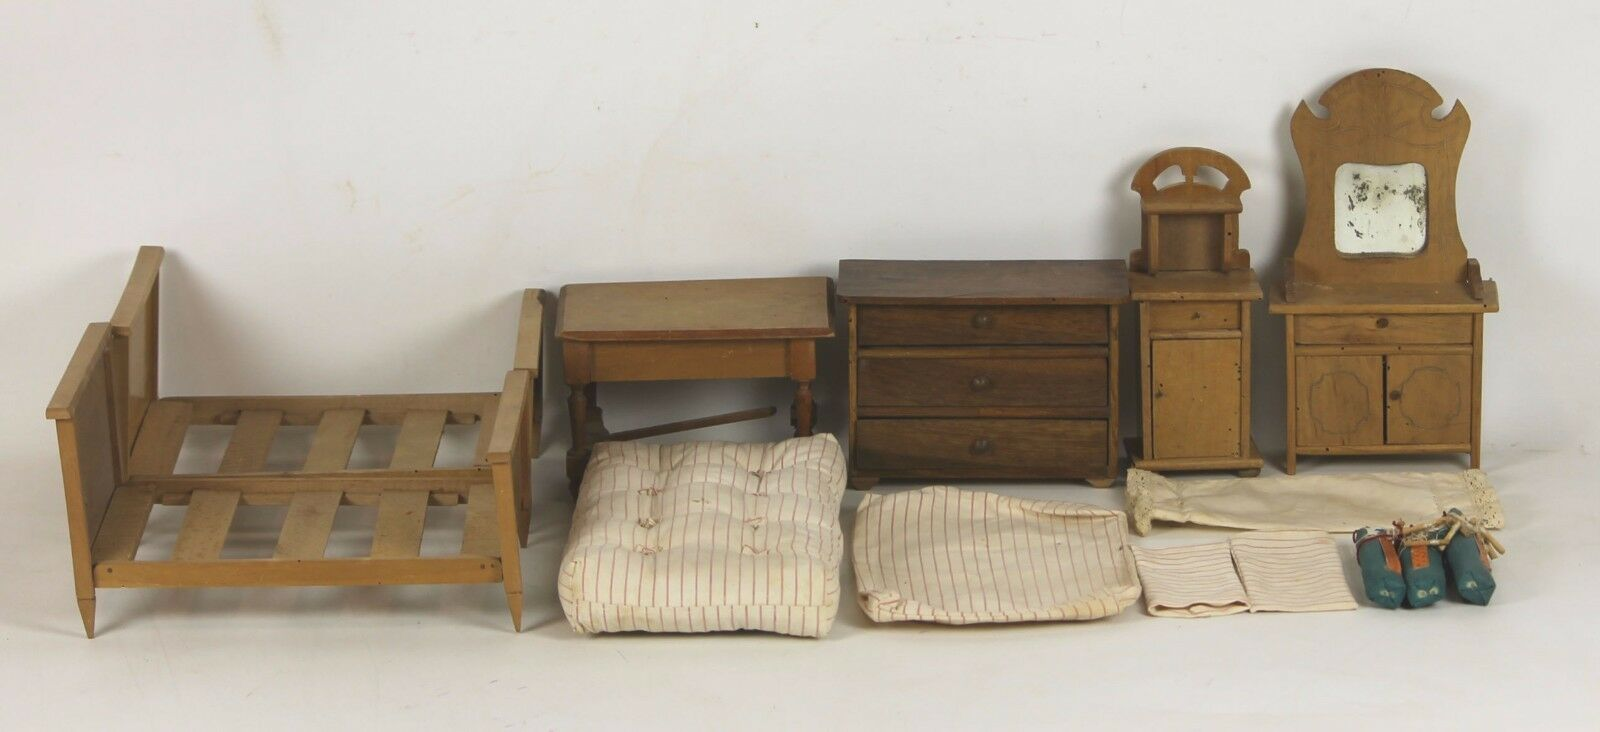 SET OF FURNITURE AND ACCESSORIES DOLLHOUSE. XIX CENTURY.